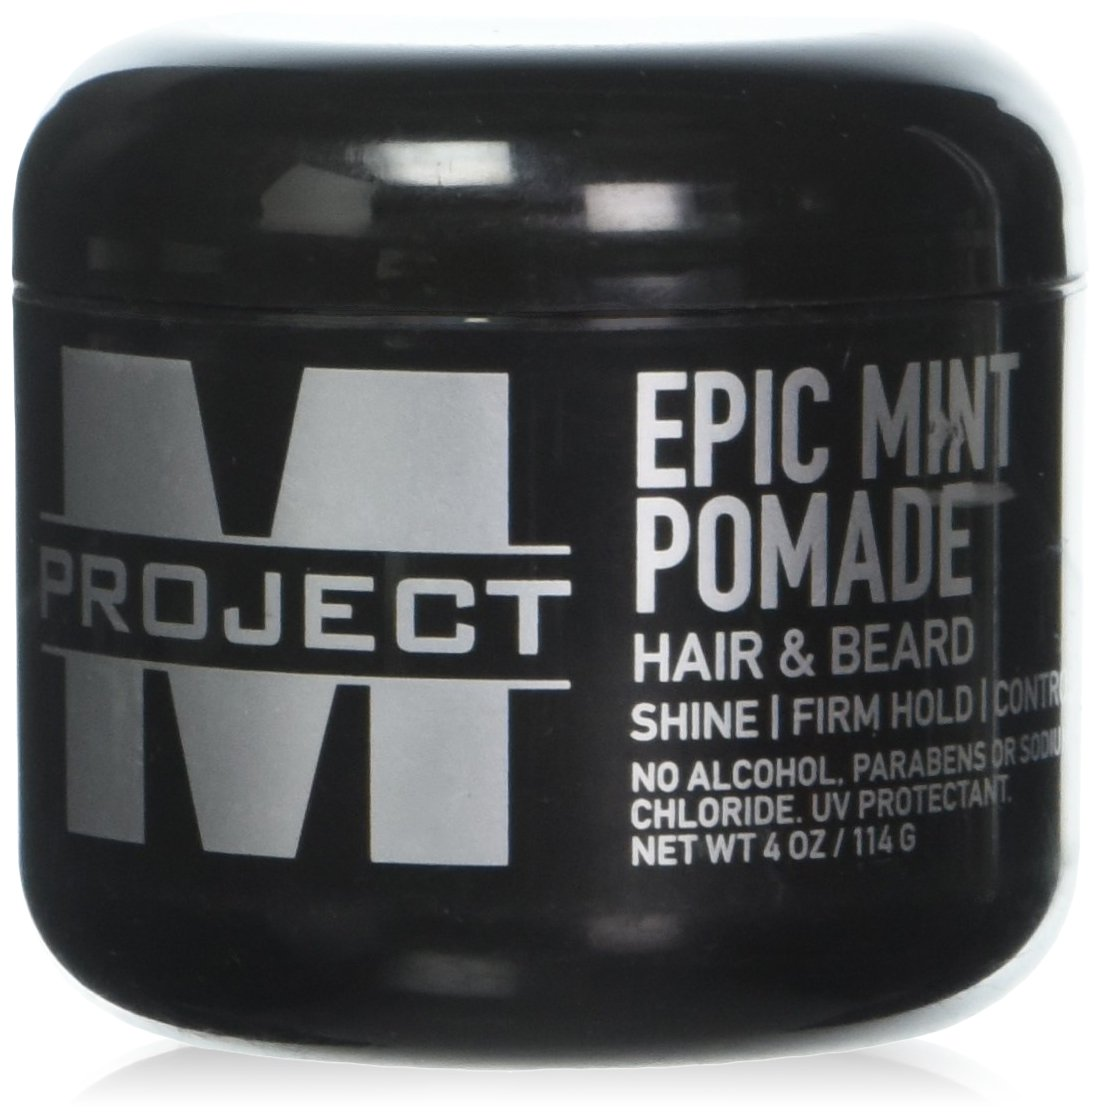 Best Pomade for Thin Hair